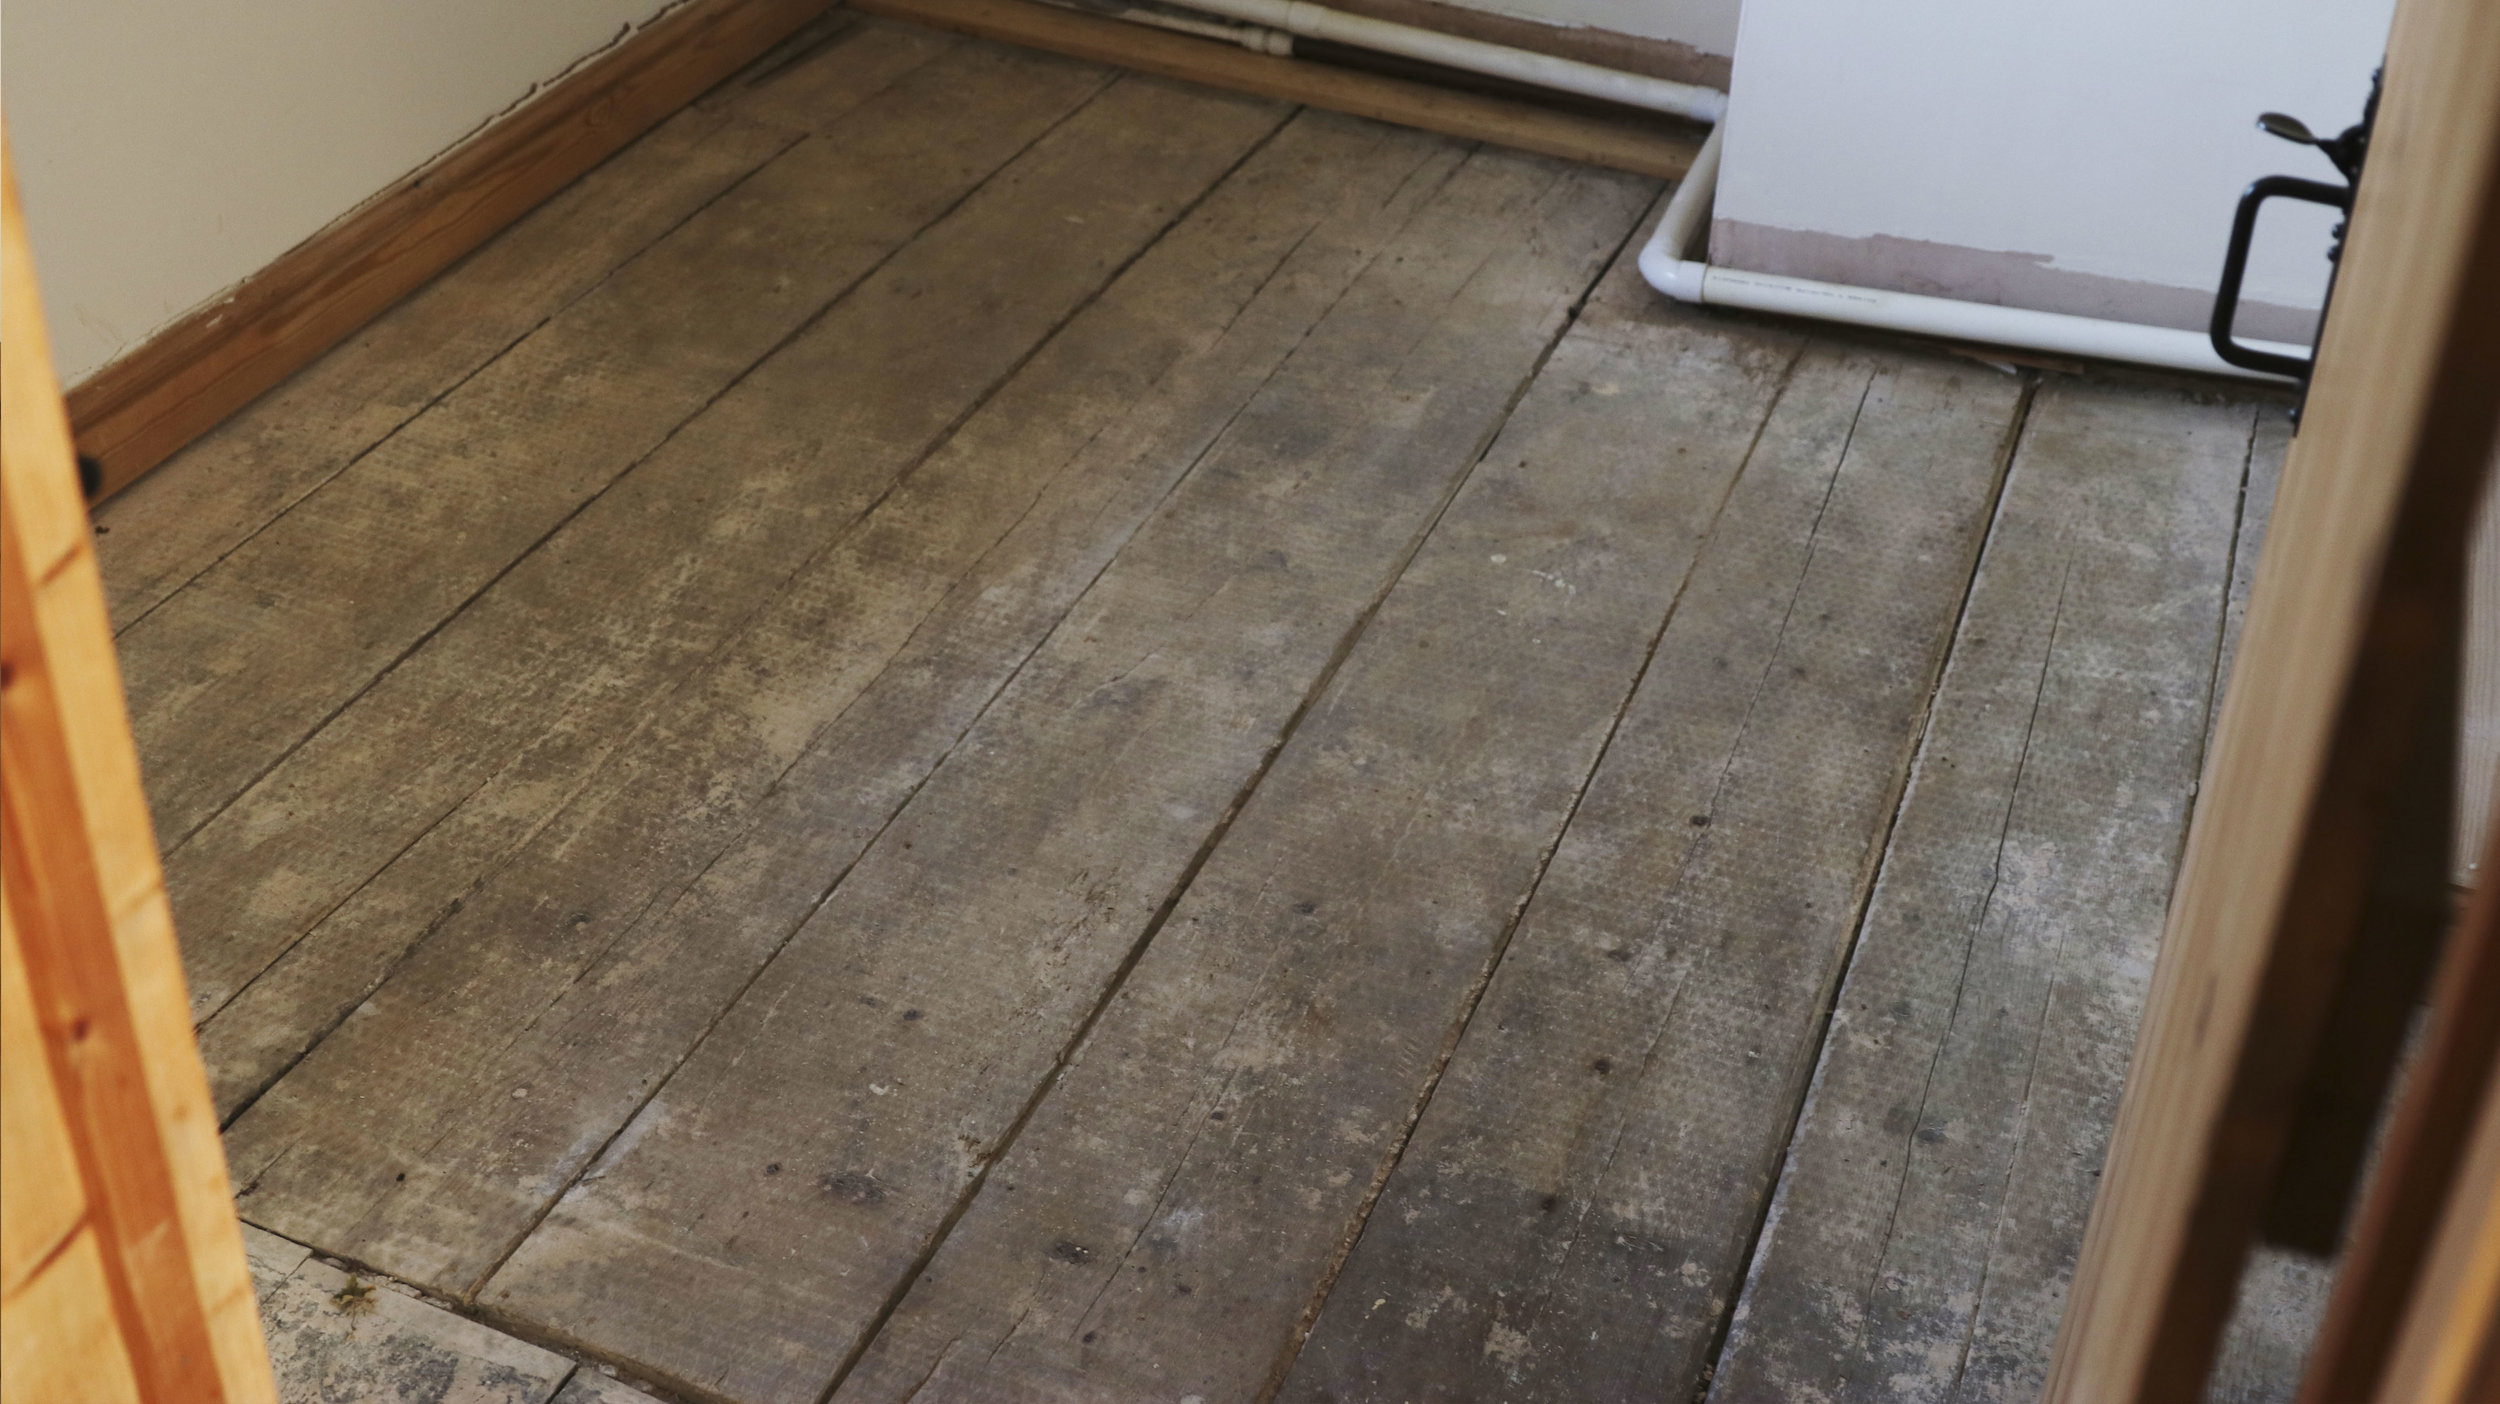 Floorboards that we sadly couldn't keep